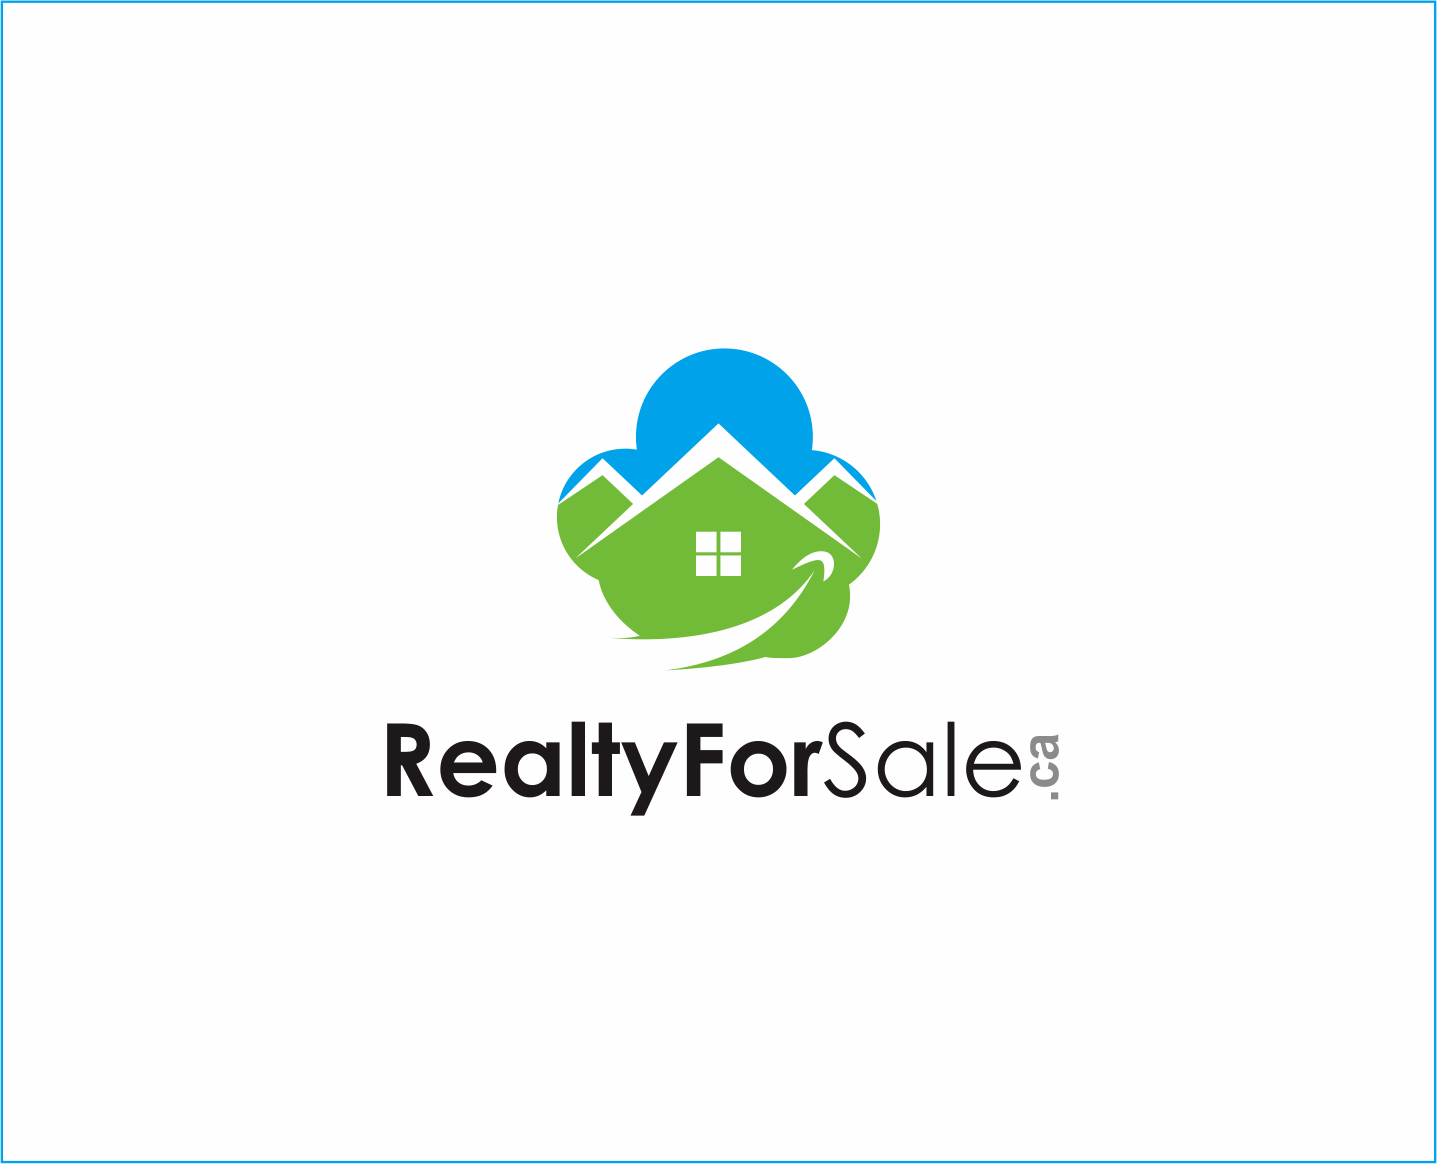 Logo Design by Armada Jamaluddin - Entry No. 92 in the Logo Design Contest Inspiring Logo Design for RealtyForSale.ca.